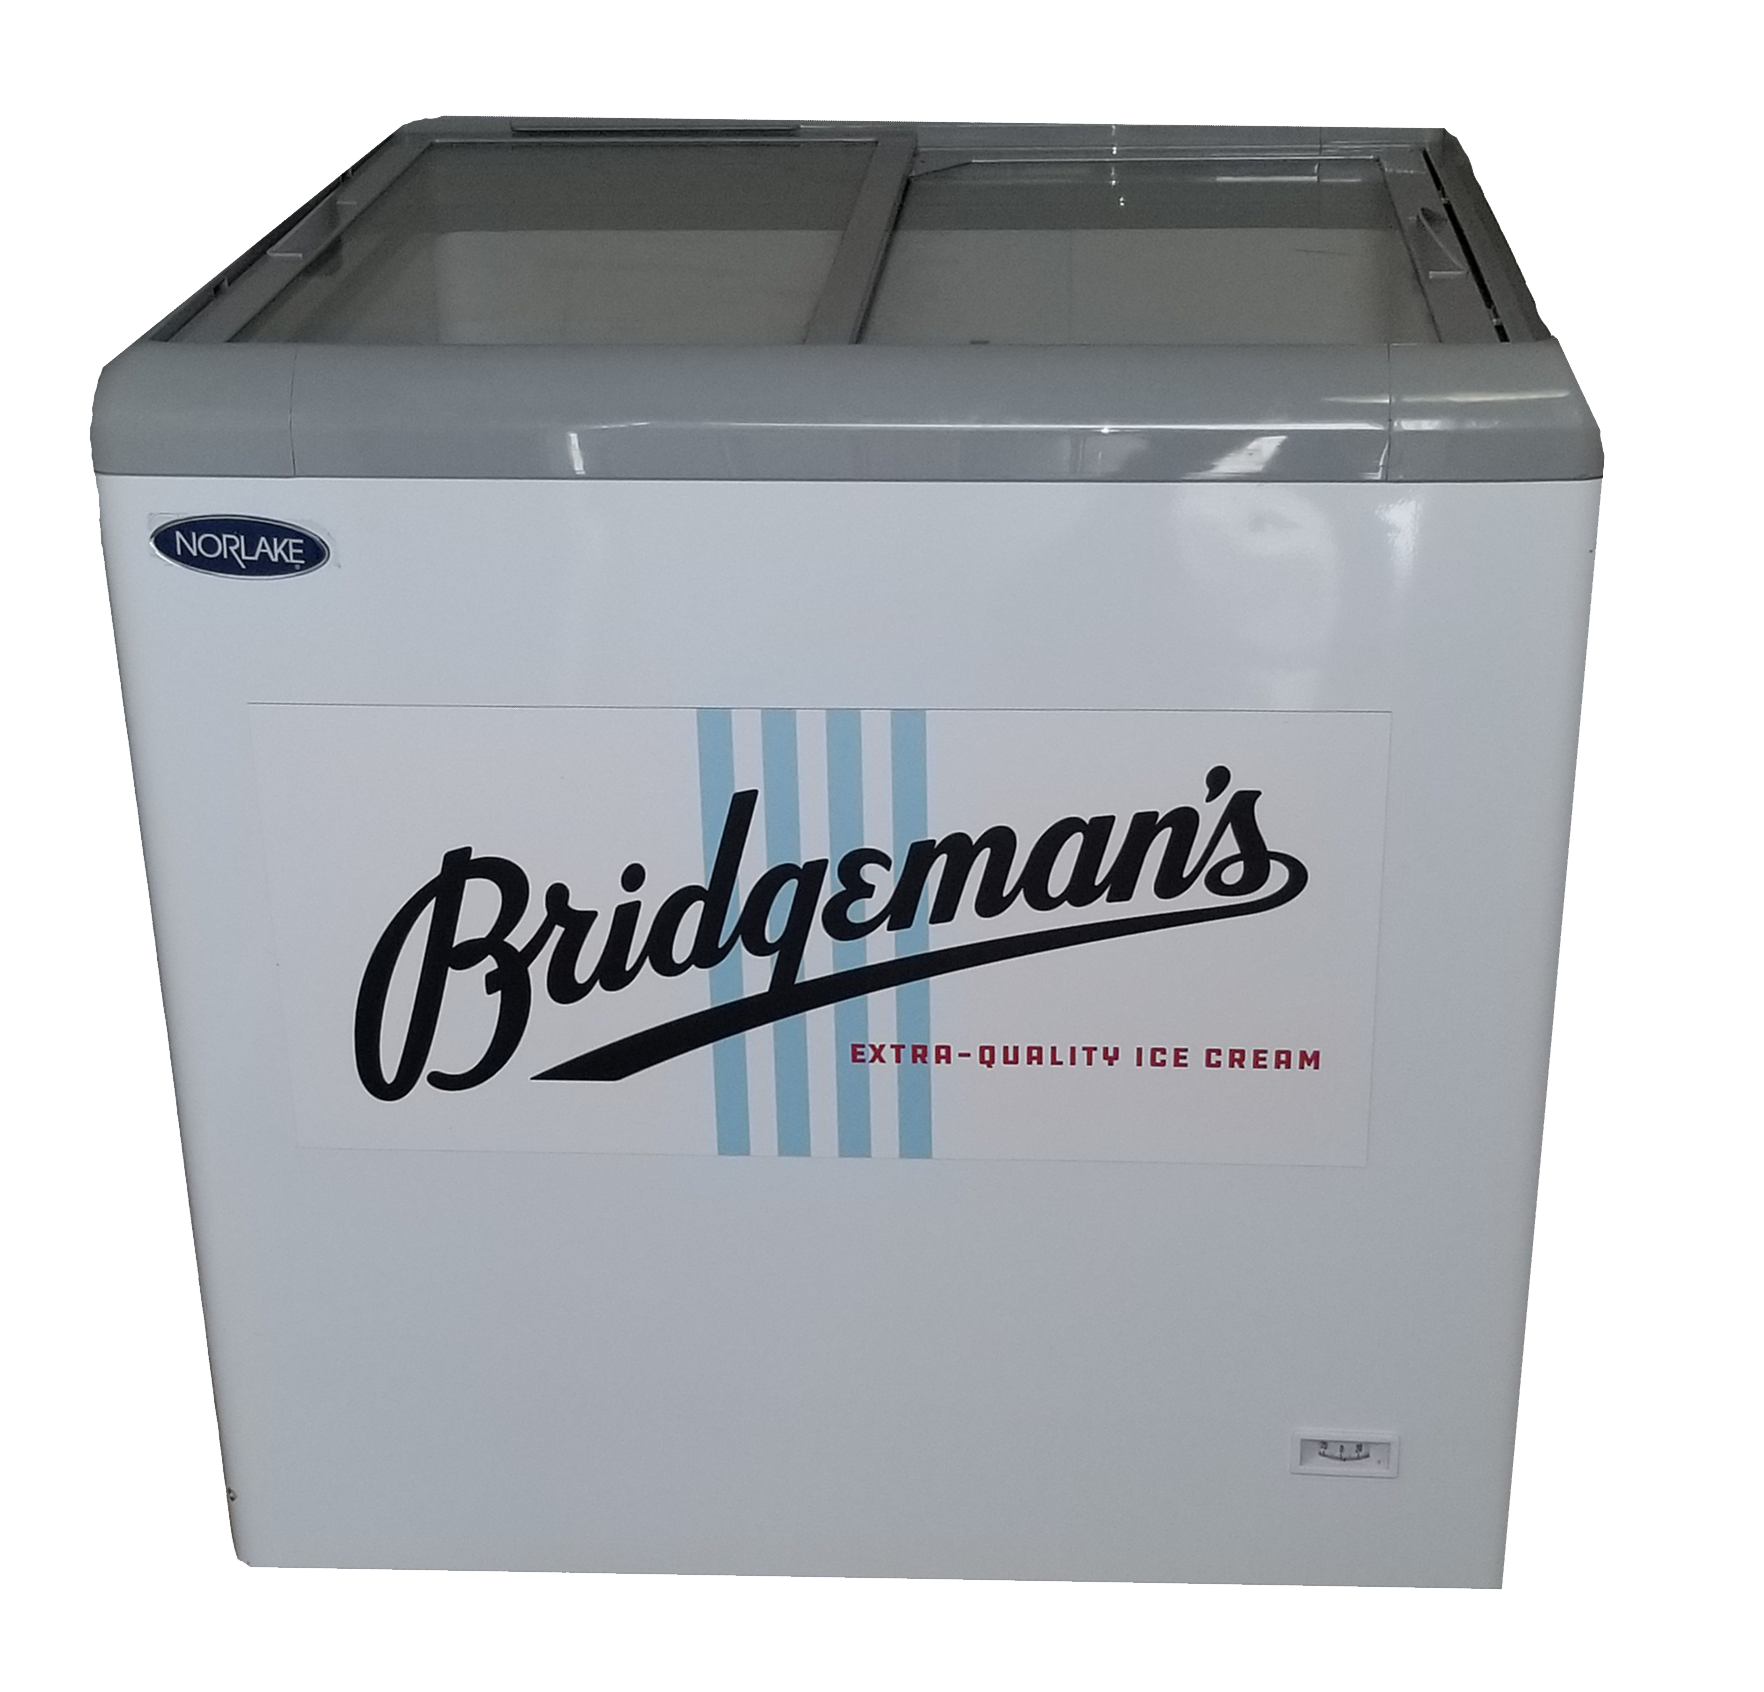 Bridgeman's Freezer Rental